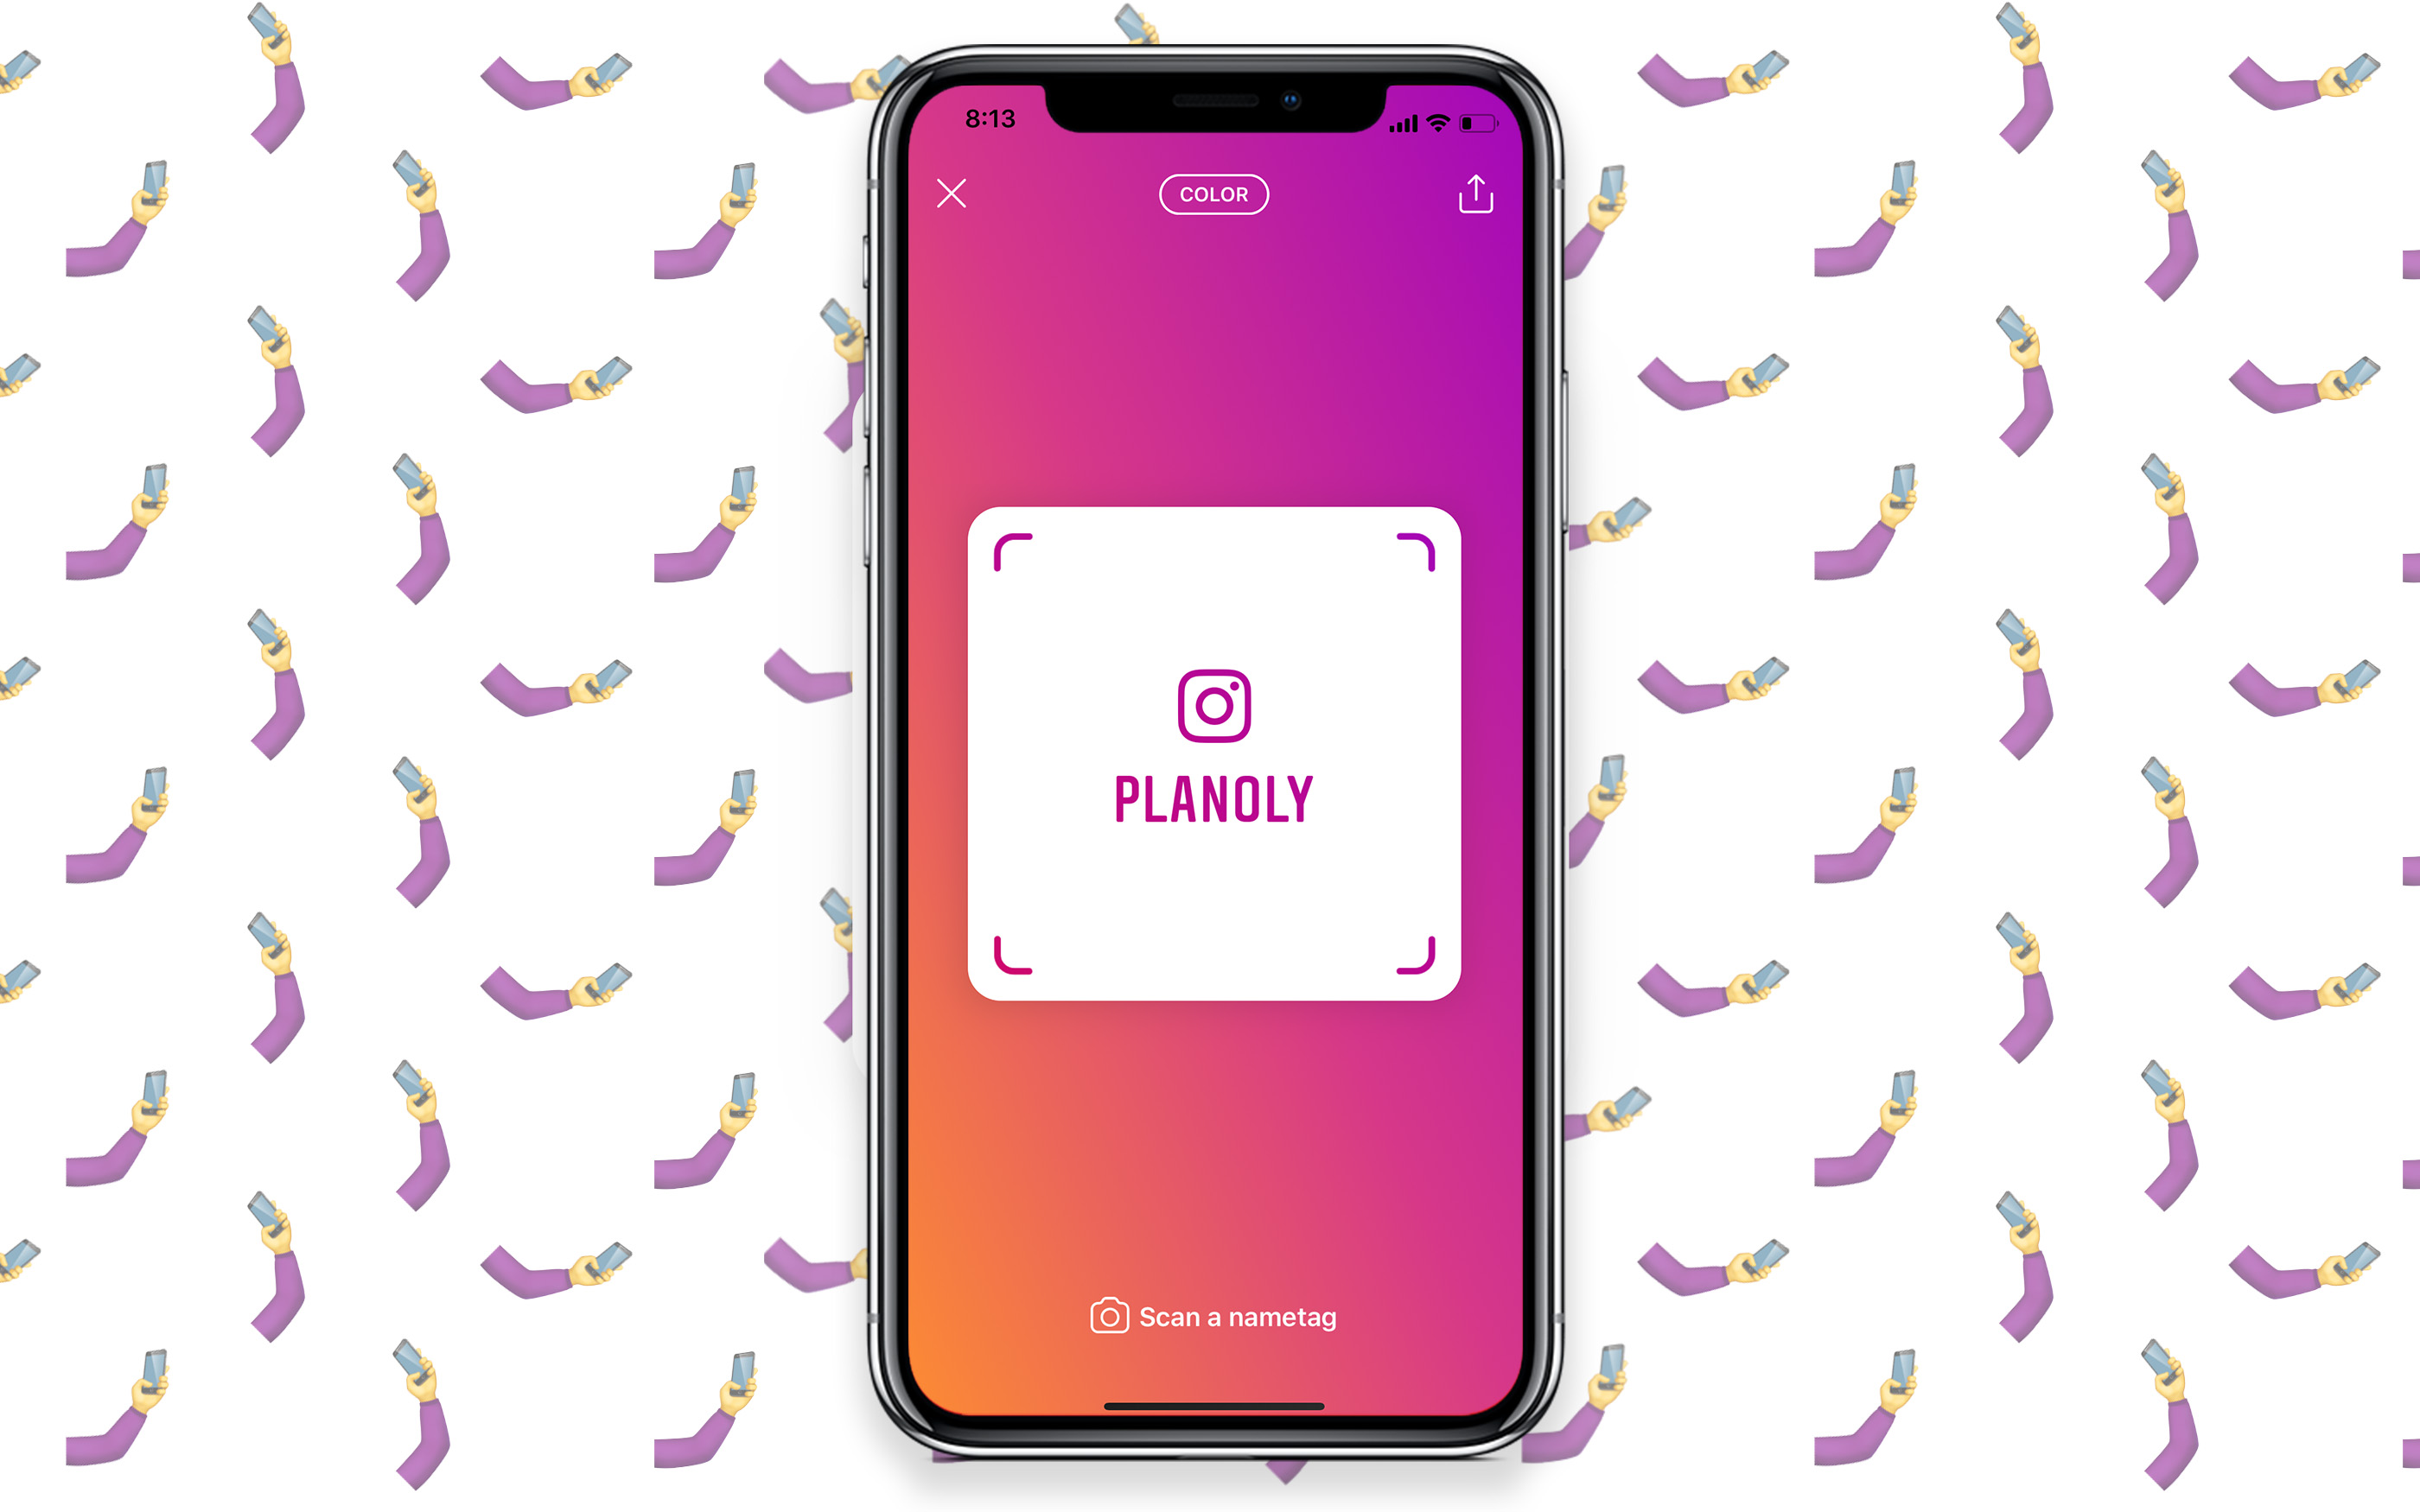 How to Use Instagram's New Nametag Feature